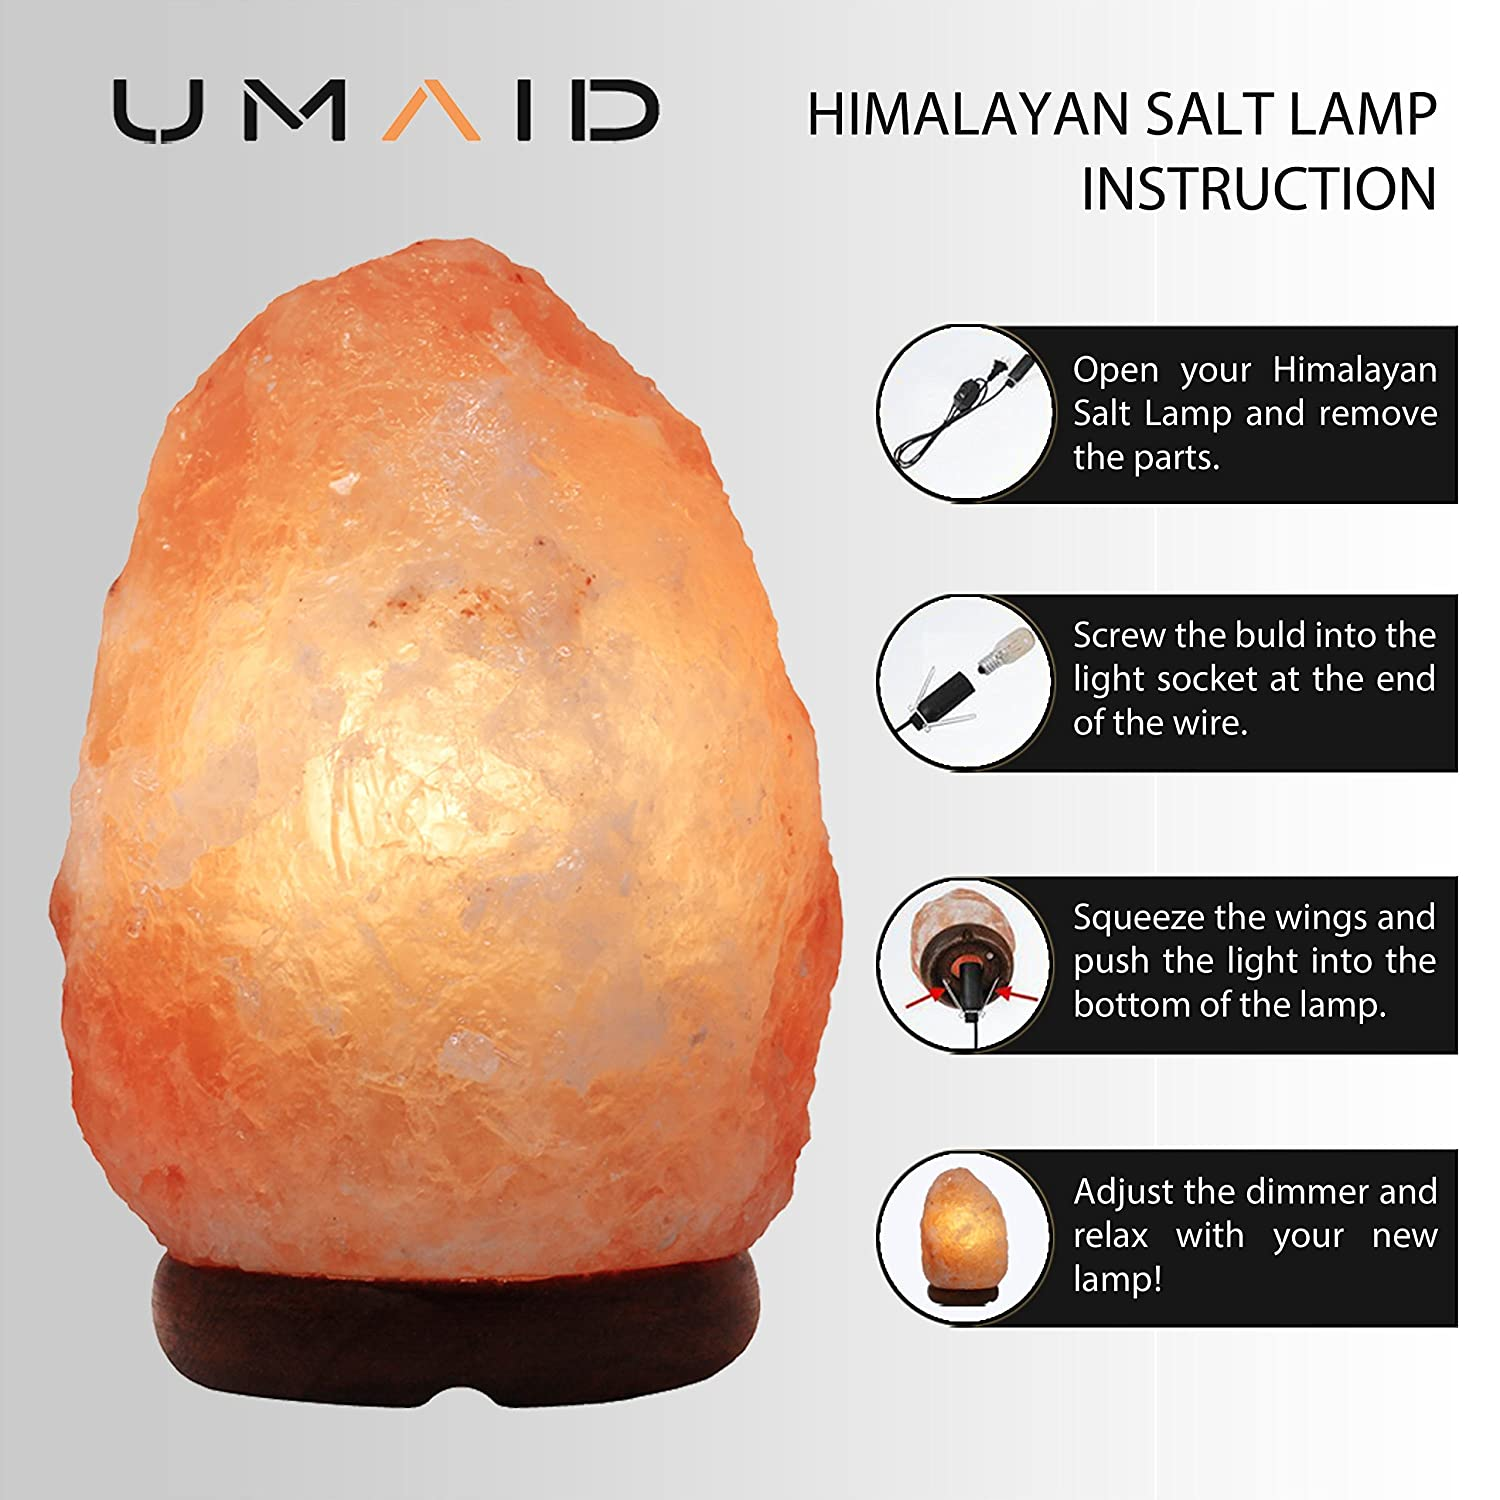 30   Best Himalayan Salt Lamp Benefits for Himalayan Salt Lamp Benefits List  117dqh